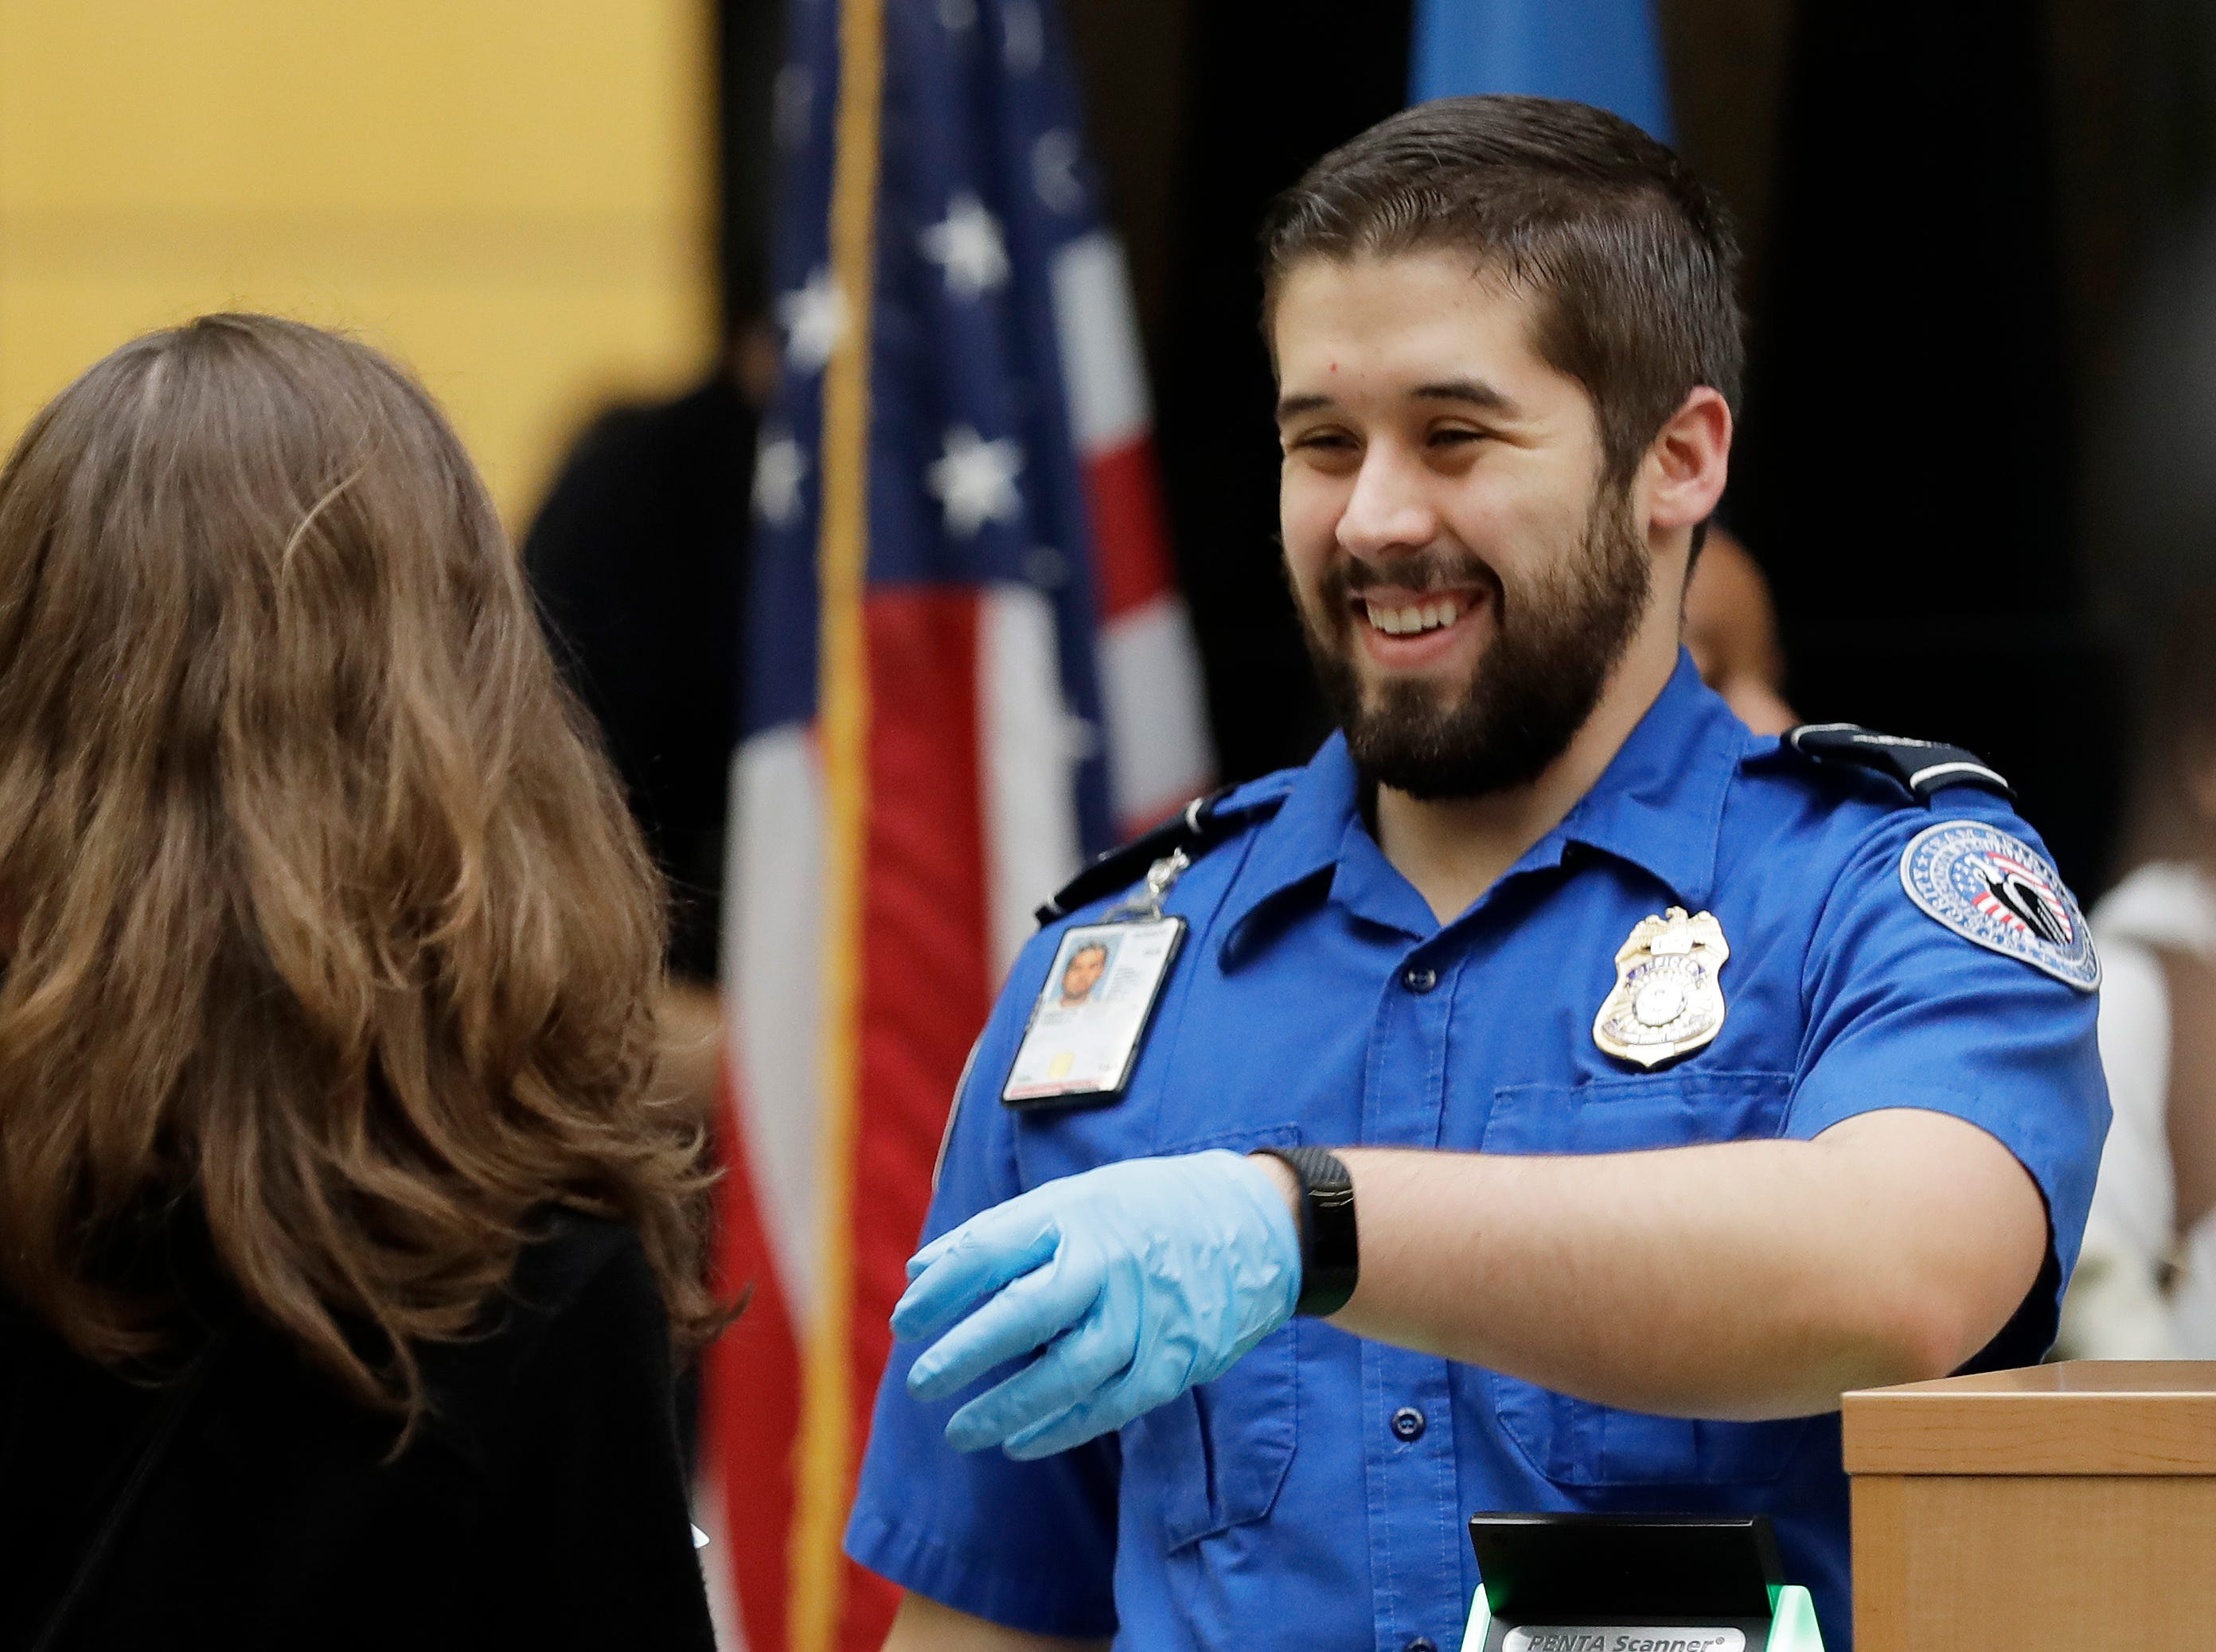 A TSA worker smiles as he checks travelers' boarding passes and identification, Friday, Jan. 25, 2019, at Seattle-Tacoma International Airport in Seattle. Yielding to mounting pressure and growing disruption, President Donald Trump and congressional leaders on Friday reached a short-term deal to reopen the government for three weeks while negotiations continue over the president's demands for money to build his long-promised wall at the U.S.-Mexico border.